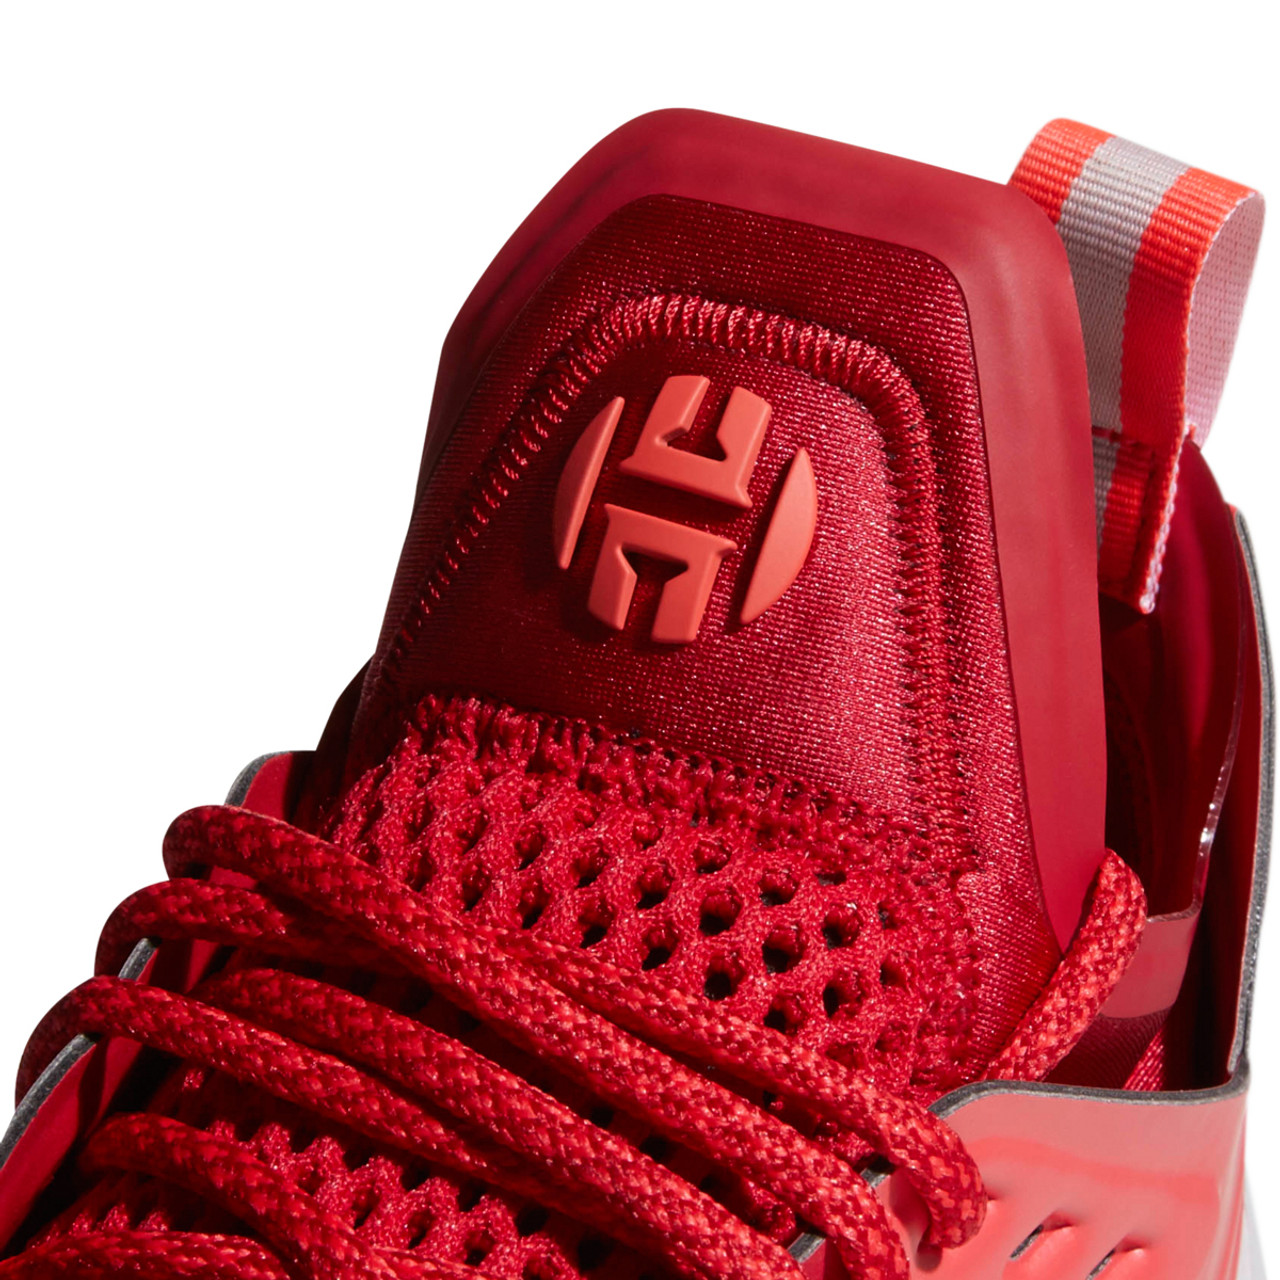 002024730c67 2 Men s Basketball Sneakers BC1015 · Adidas Harden Vol. 2 Men s Basketball  Sneakers BC1015 ...